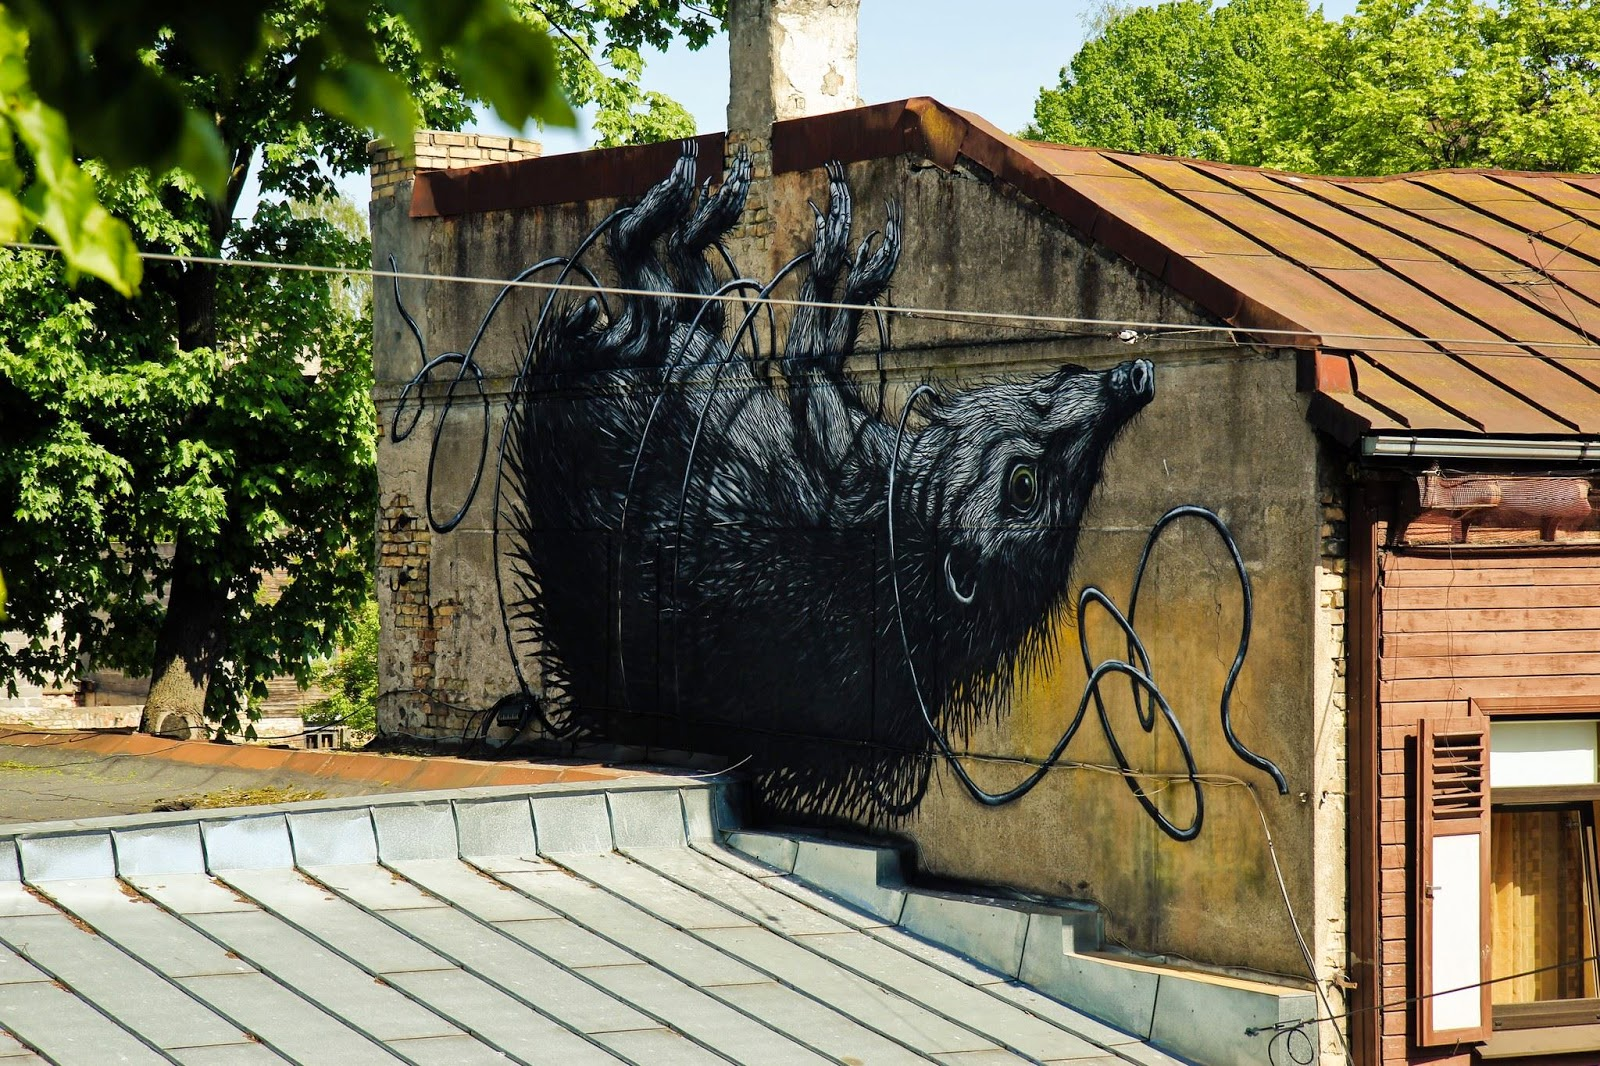 Last seen in Spain last month (covered), ROA is now in Eastern Europe for the Blank Canvas Street Art Festival.